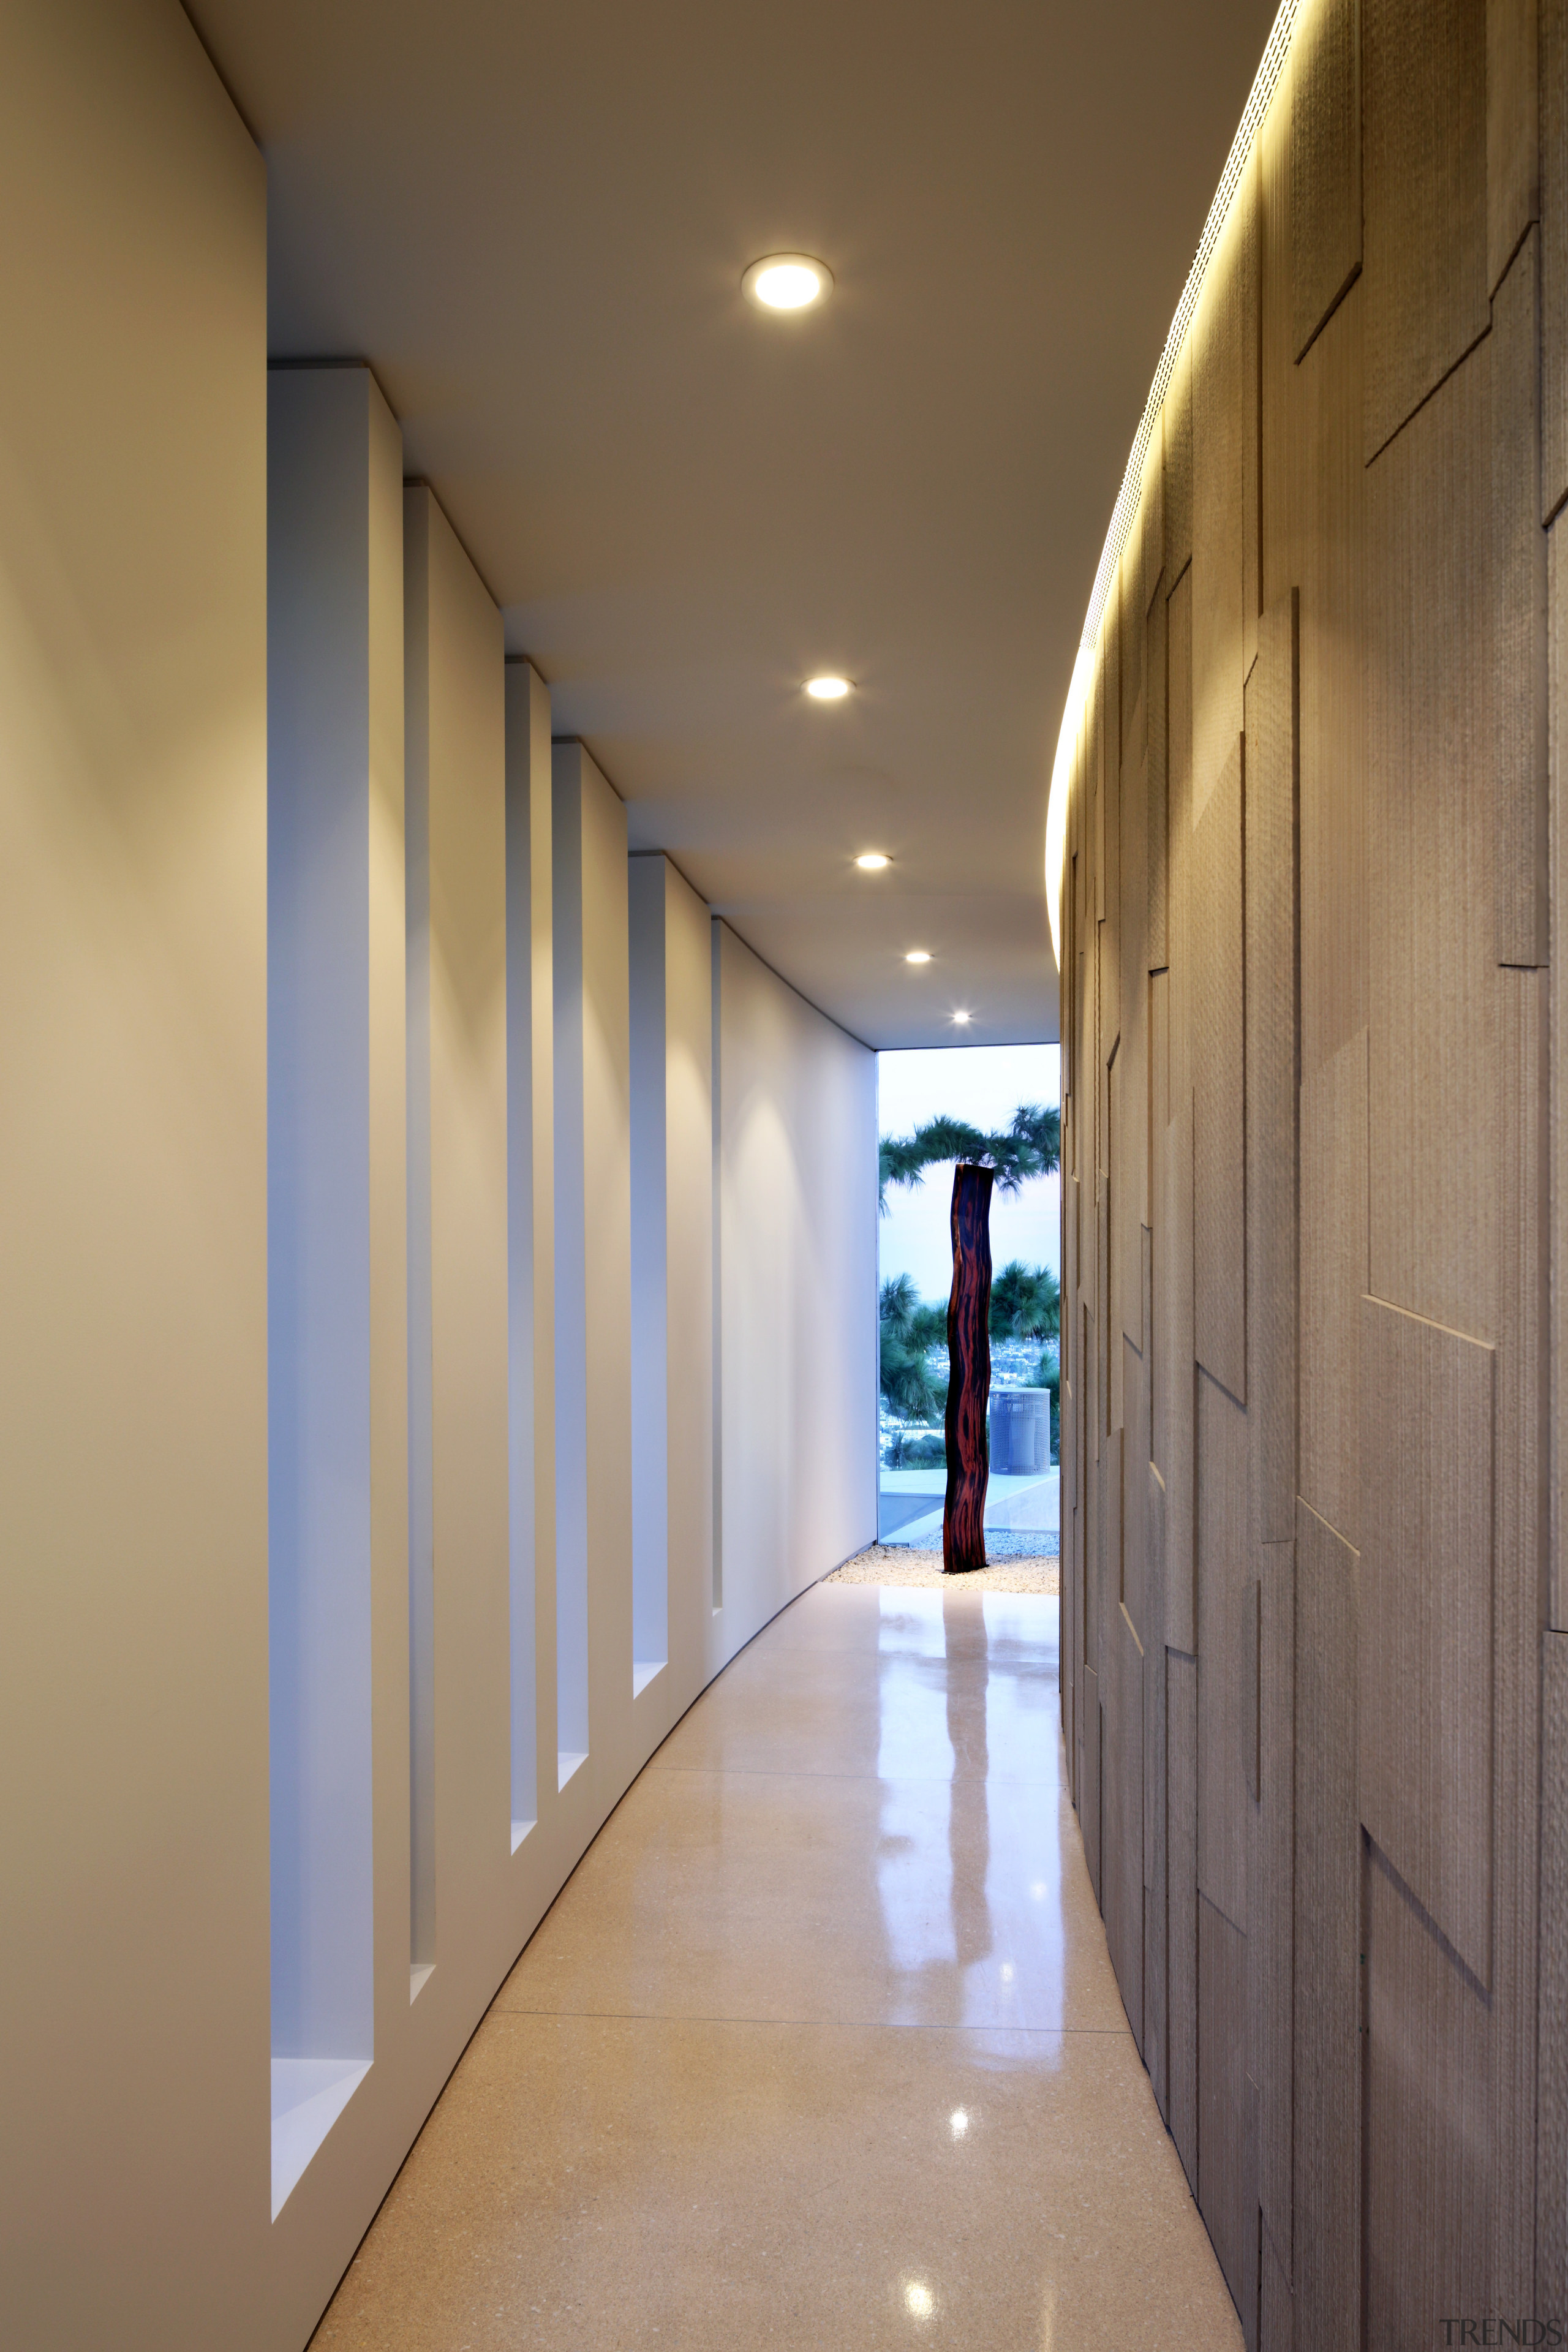 Architecture without straight lines. Nearly every surface in apartment, architecture, ceiling, daylighting, floor, hall, home, house, interior design, lighting, lobby, real estate, wall, wood, brown